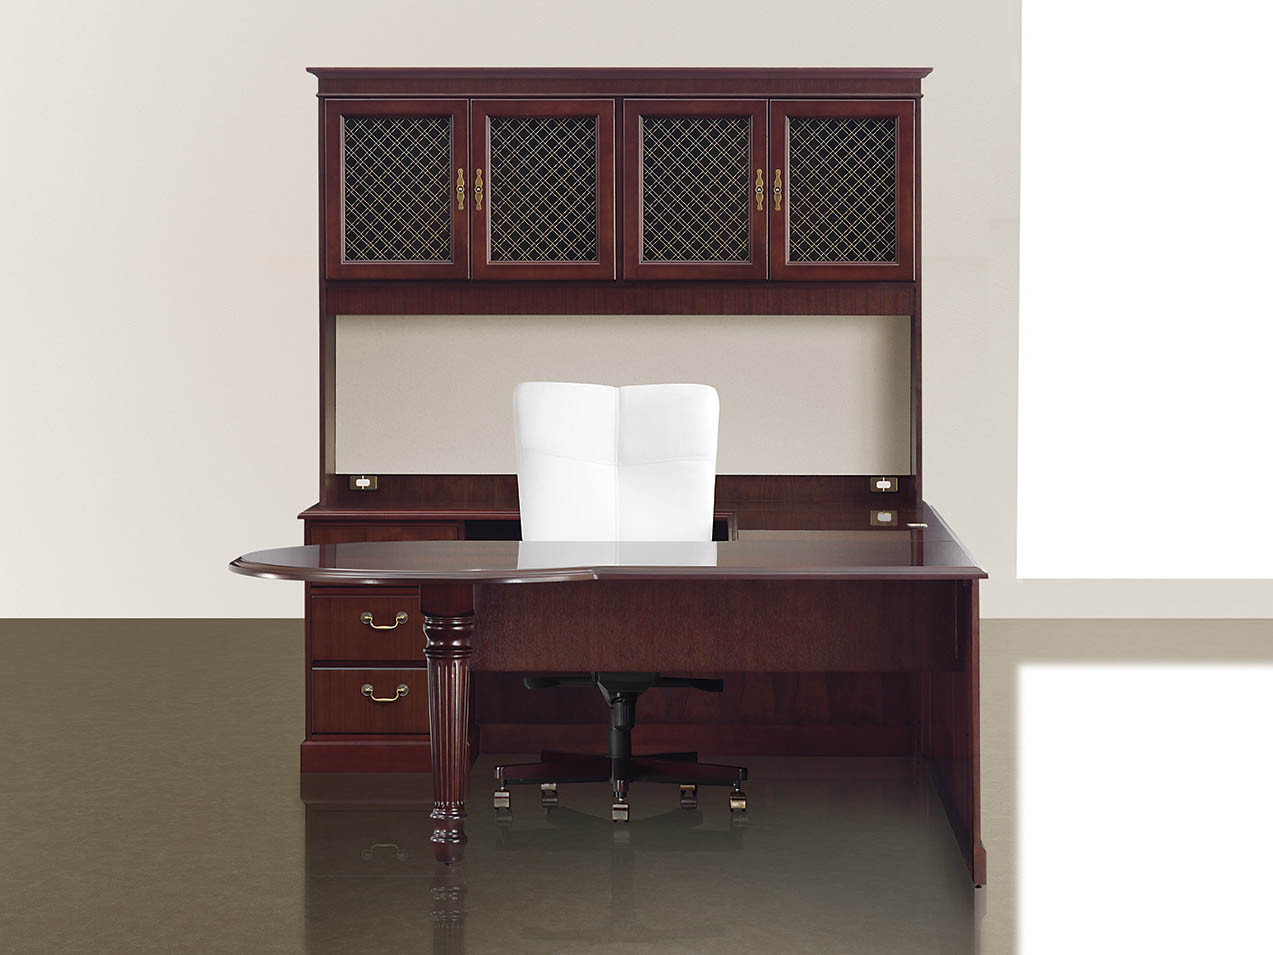 Ofs Executive I Office Furniture Warehouse